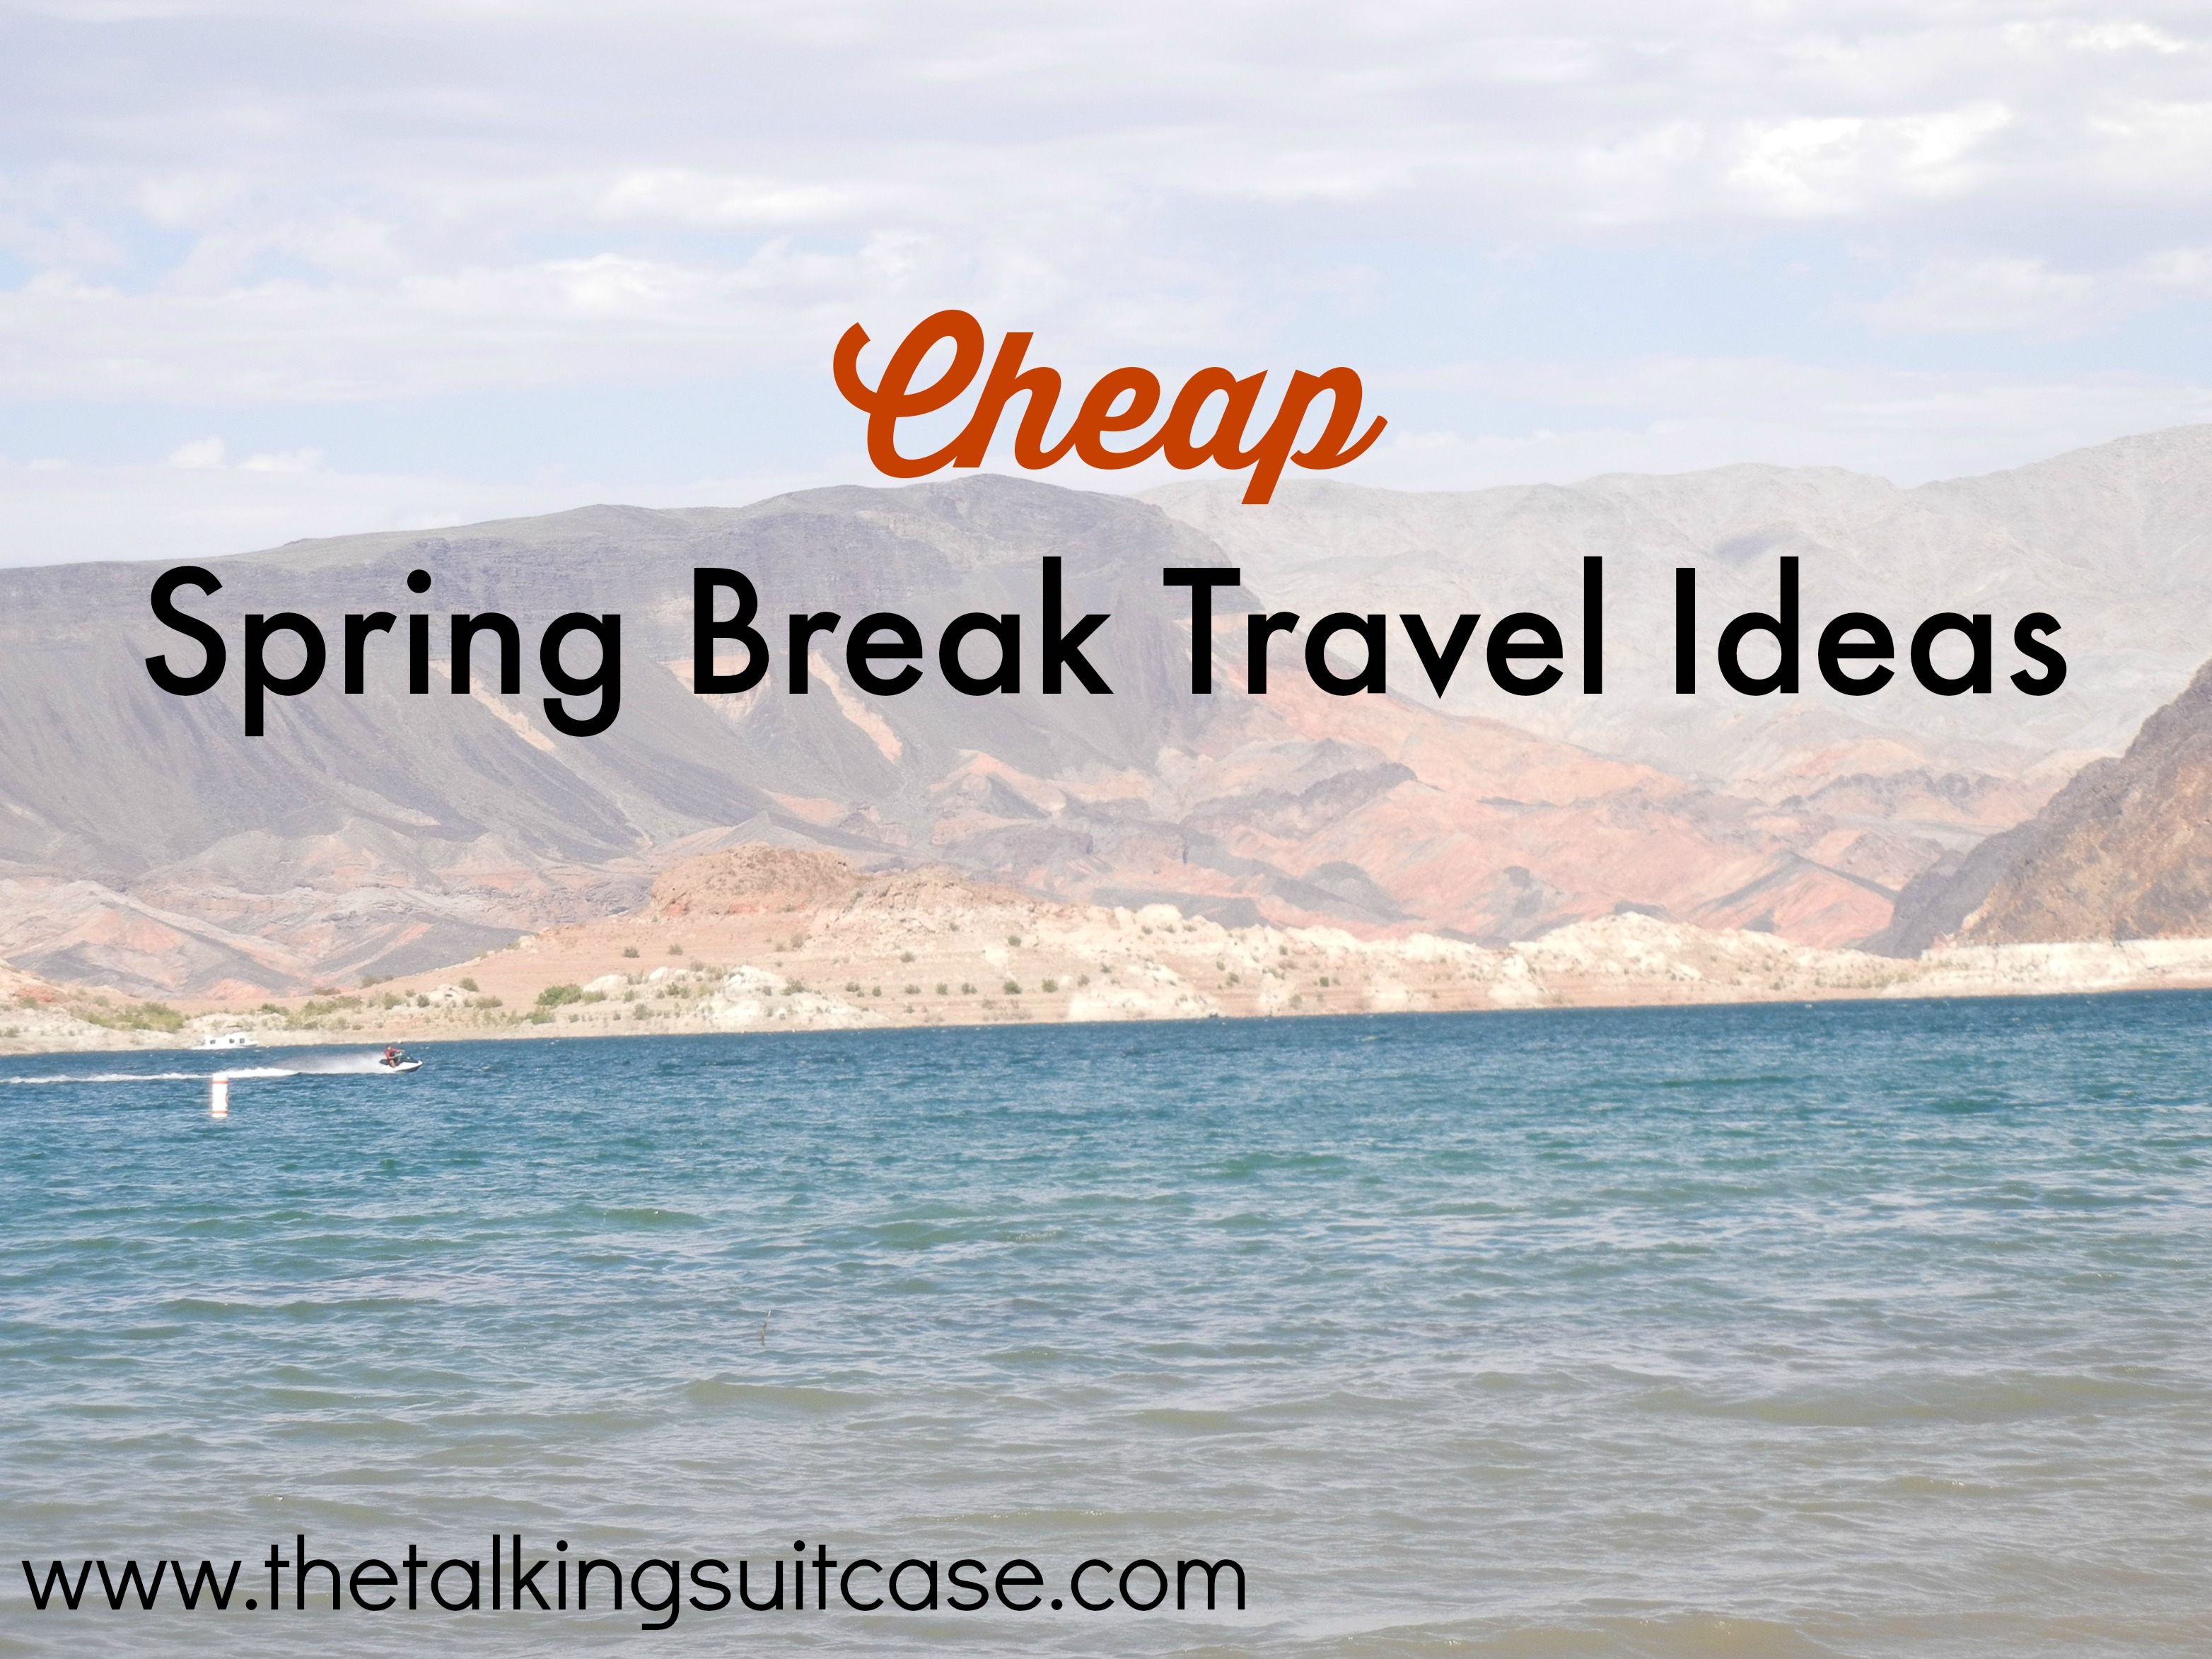 Cheap Spring Break Travel